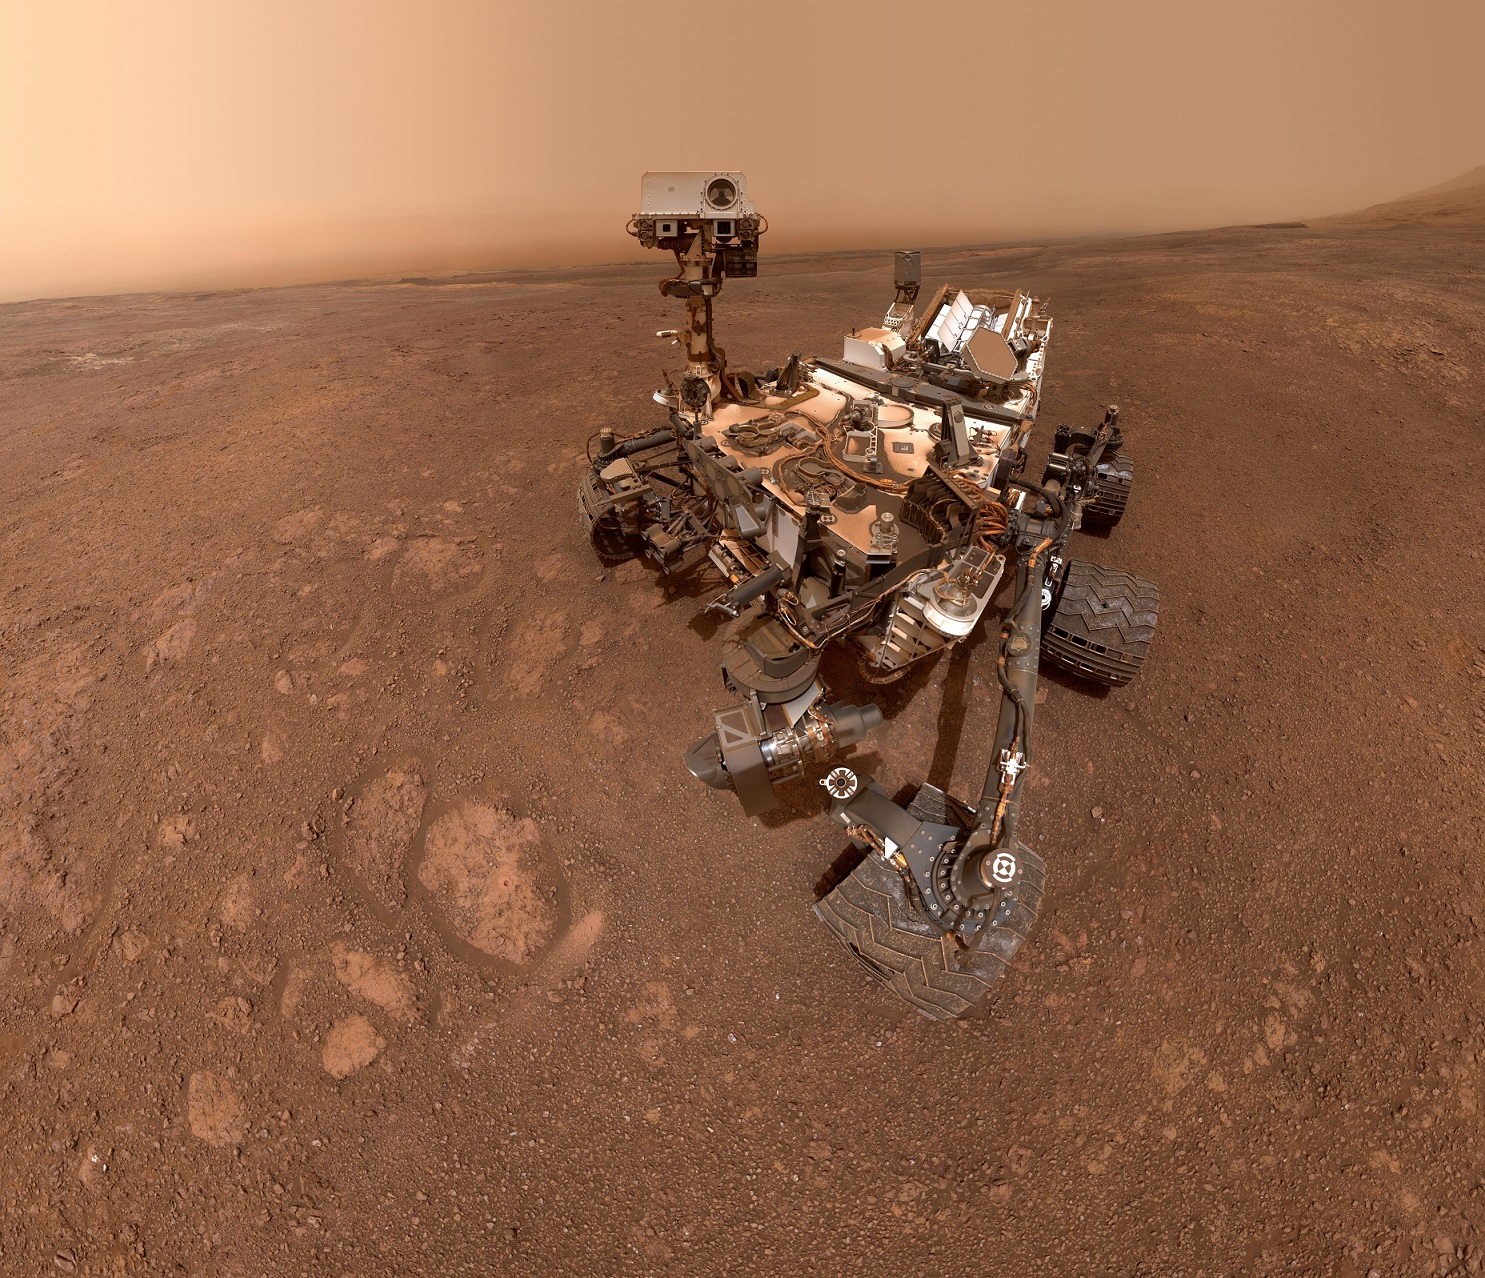 curiosity rover pictures - 1000×930